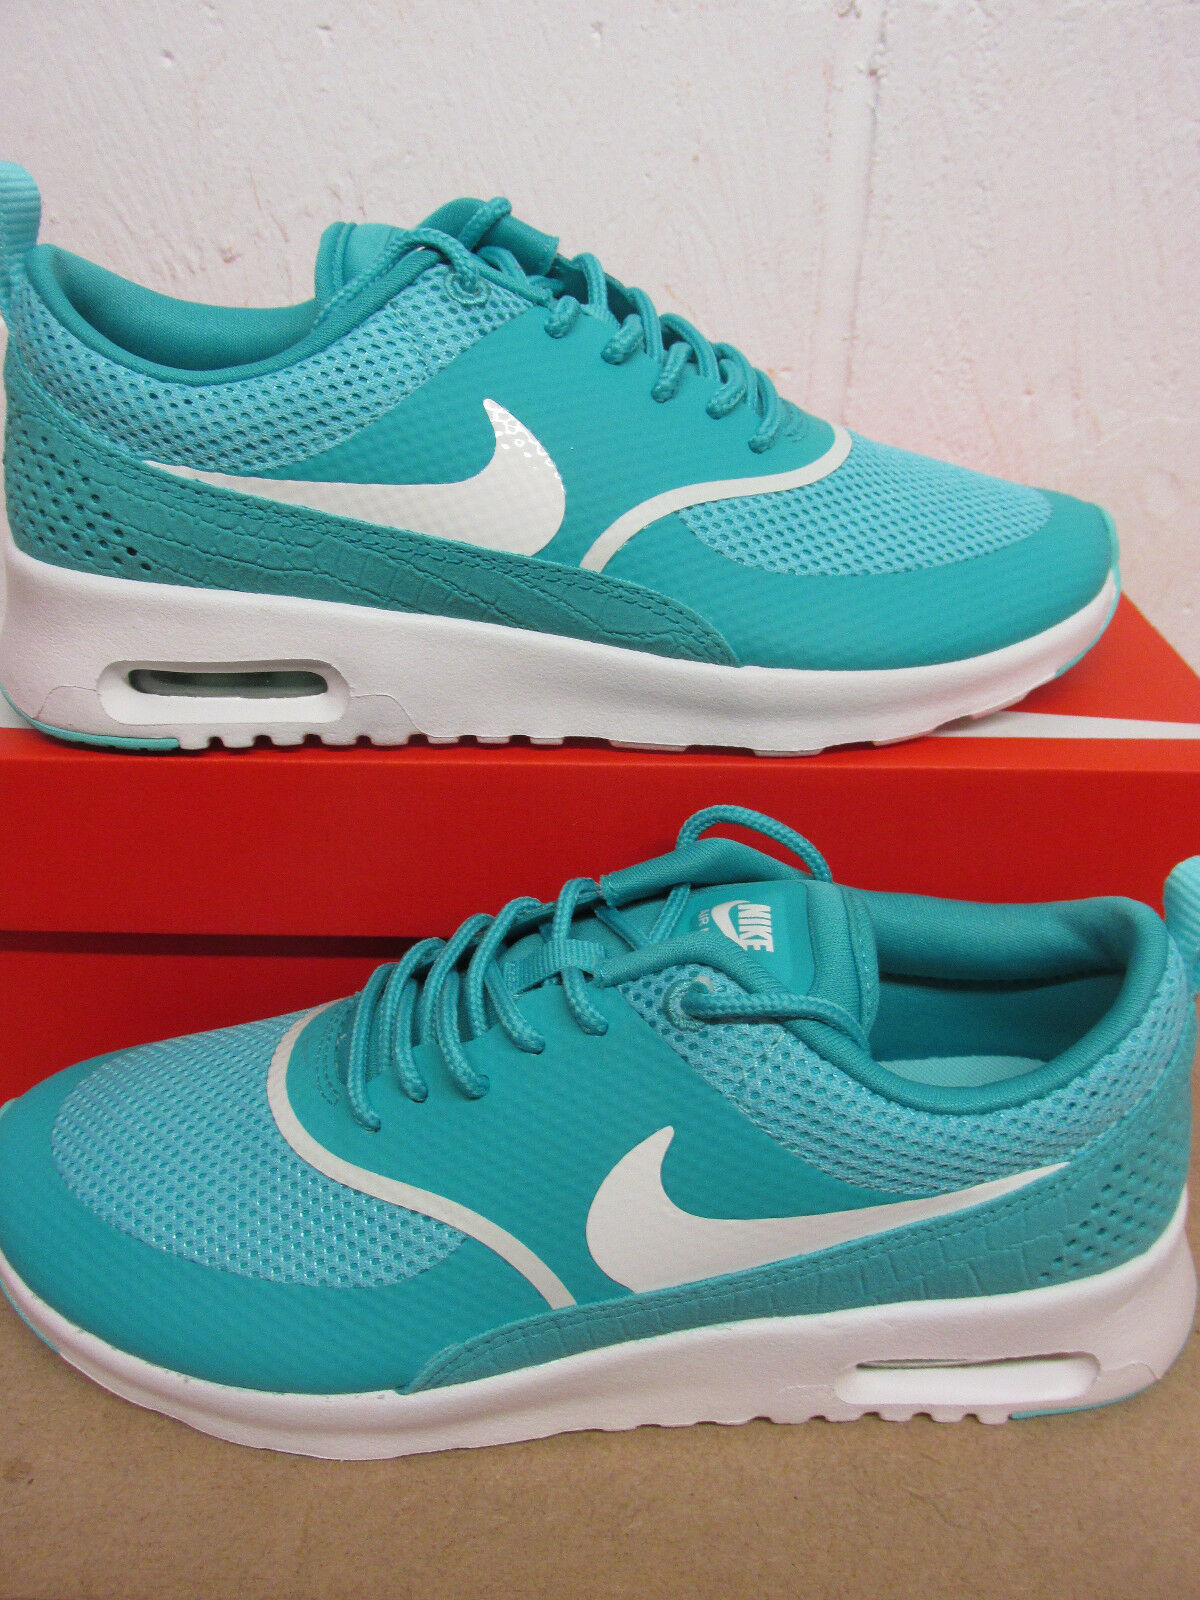 nike womens air max THEA running trainers 599409 307 sneakers shoes